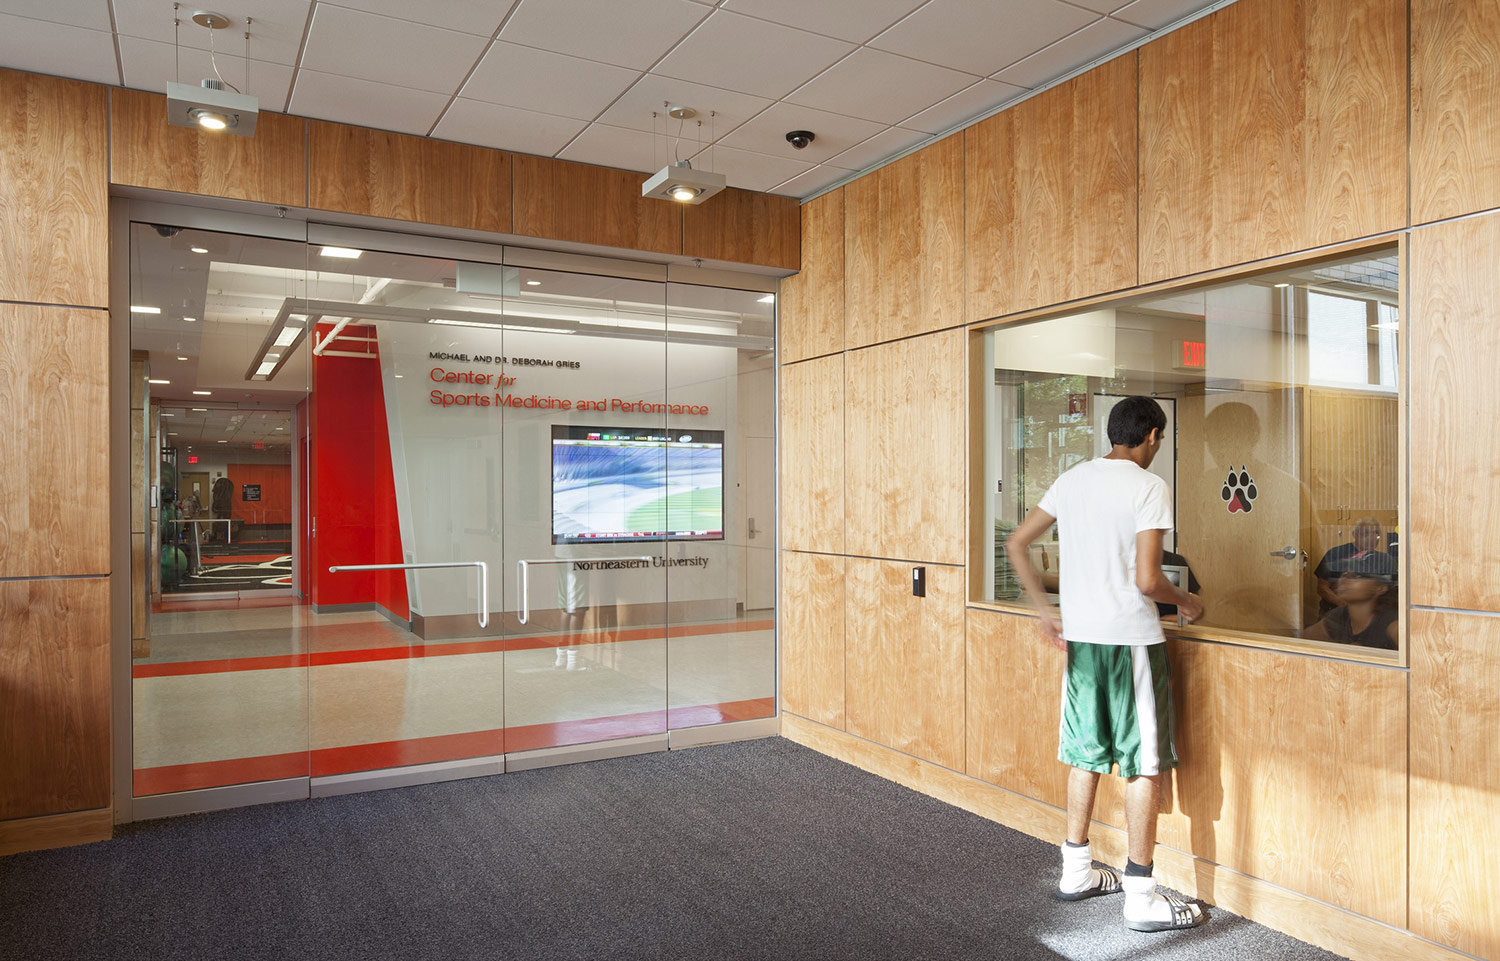 Gries Center for Sports Medicine & Performance Entrance